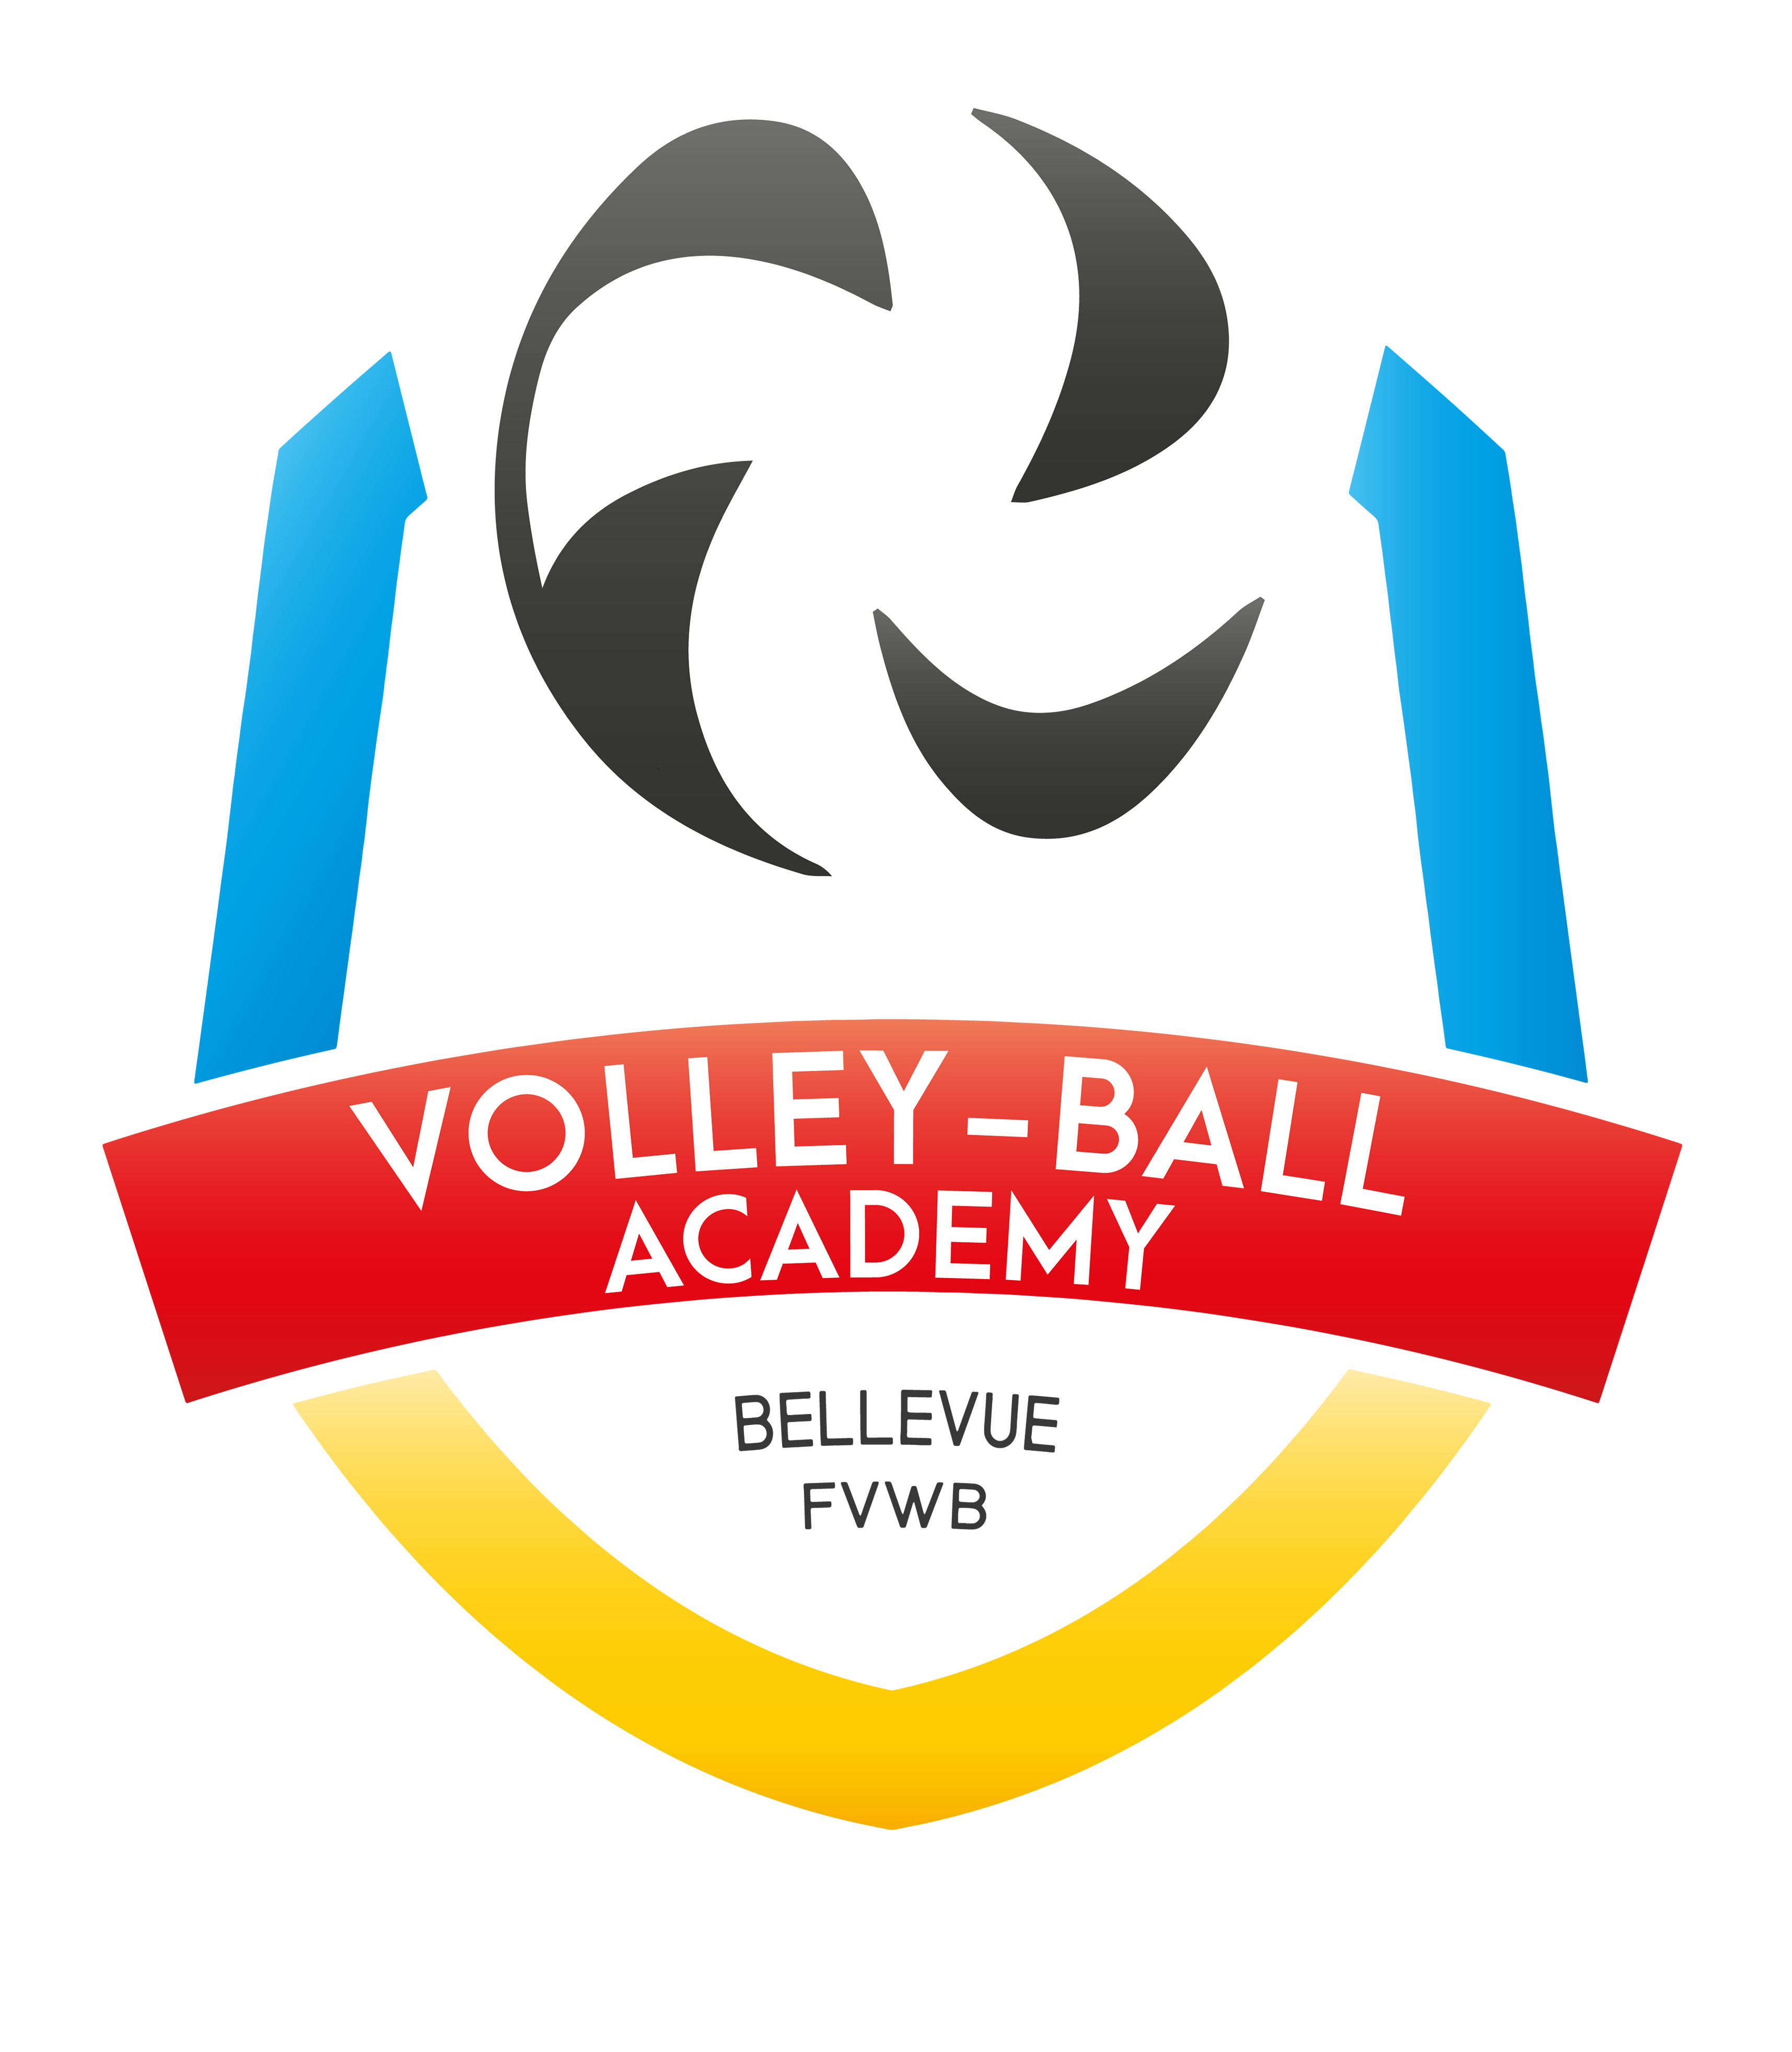 Volley-Ball Academy FVWB/Bellevue